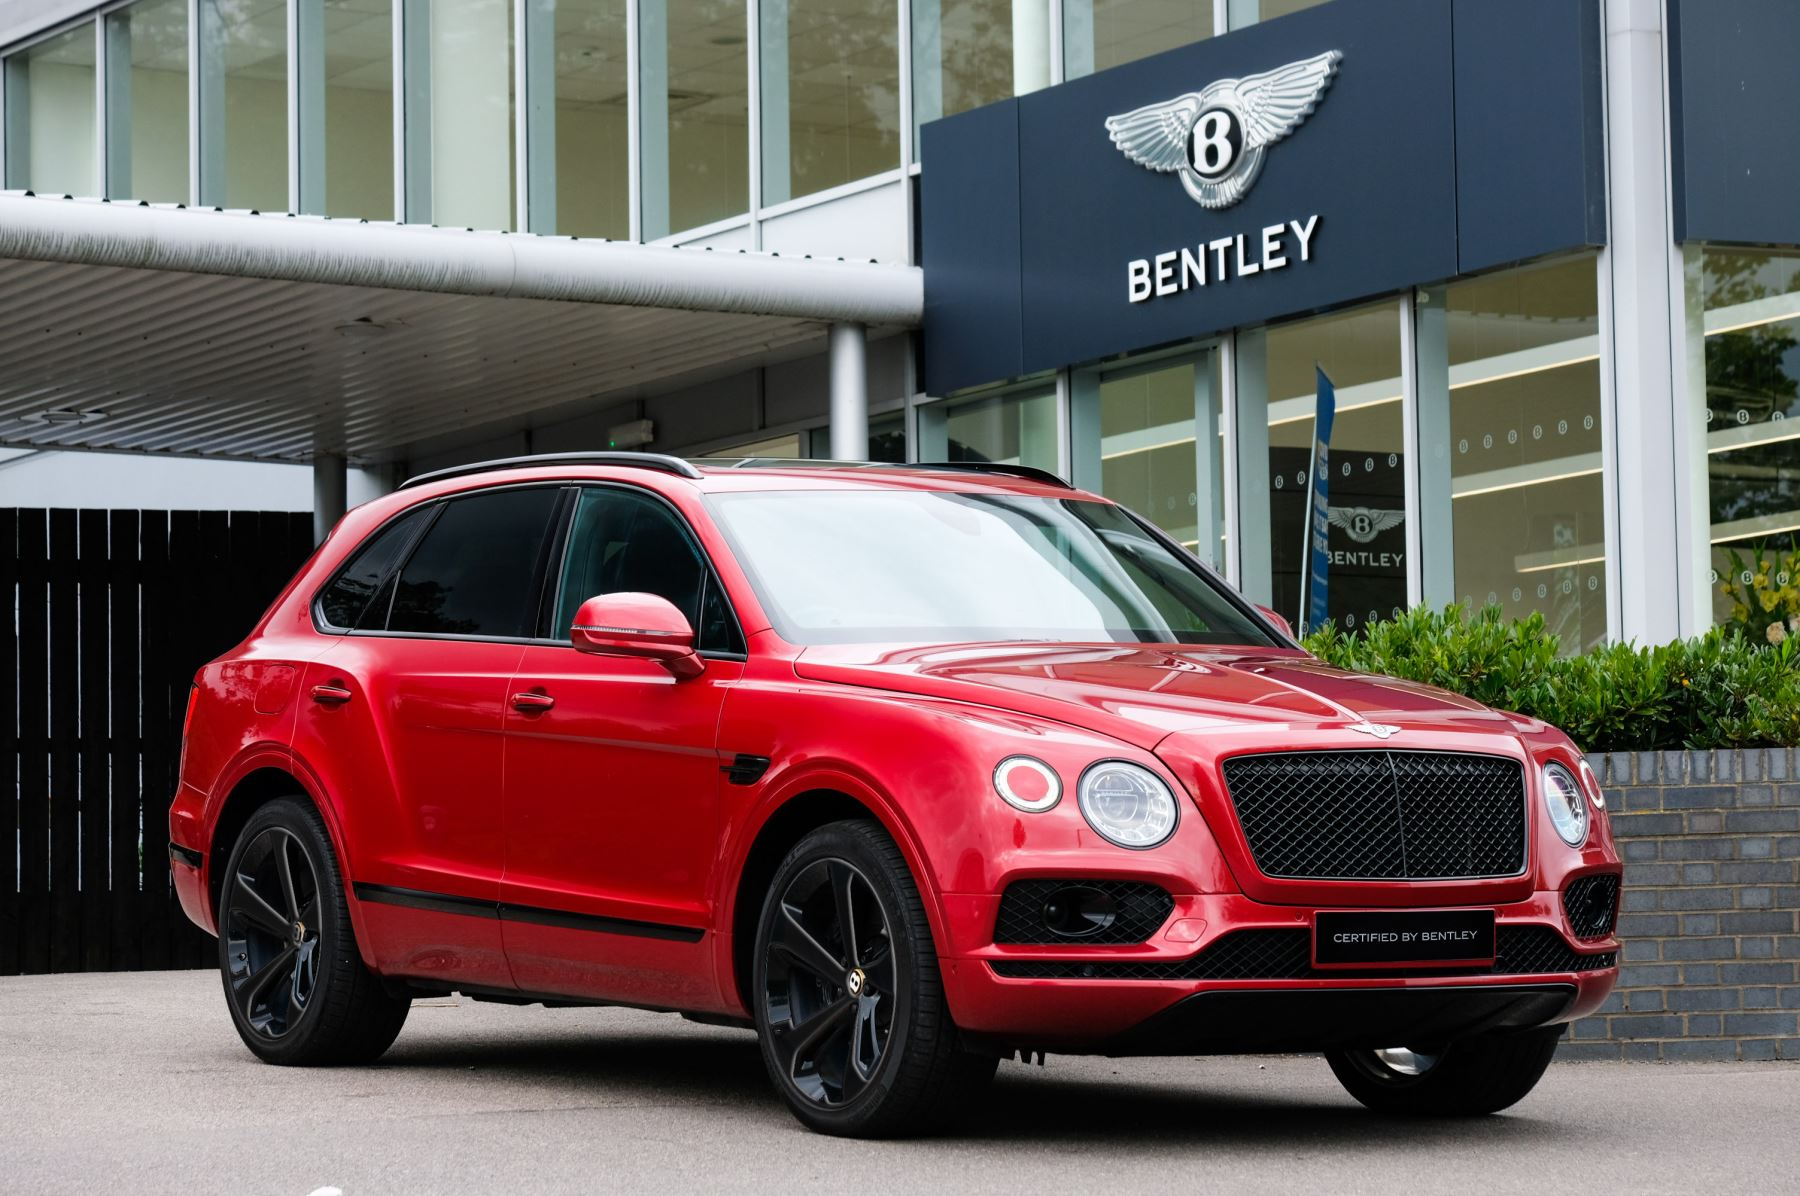 Bentley Bentayga 4.0 V8 - Mulliner Driving Specification with 22 Inch Directional - Black Painted and Polished Alloys Automatic 5 door Estate